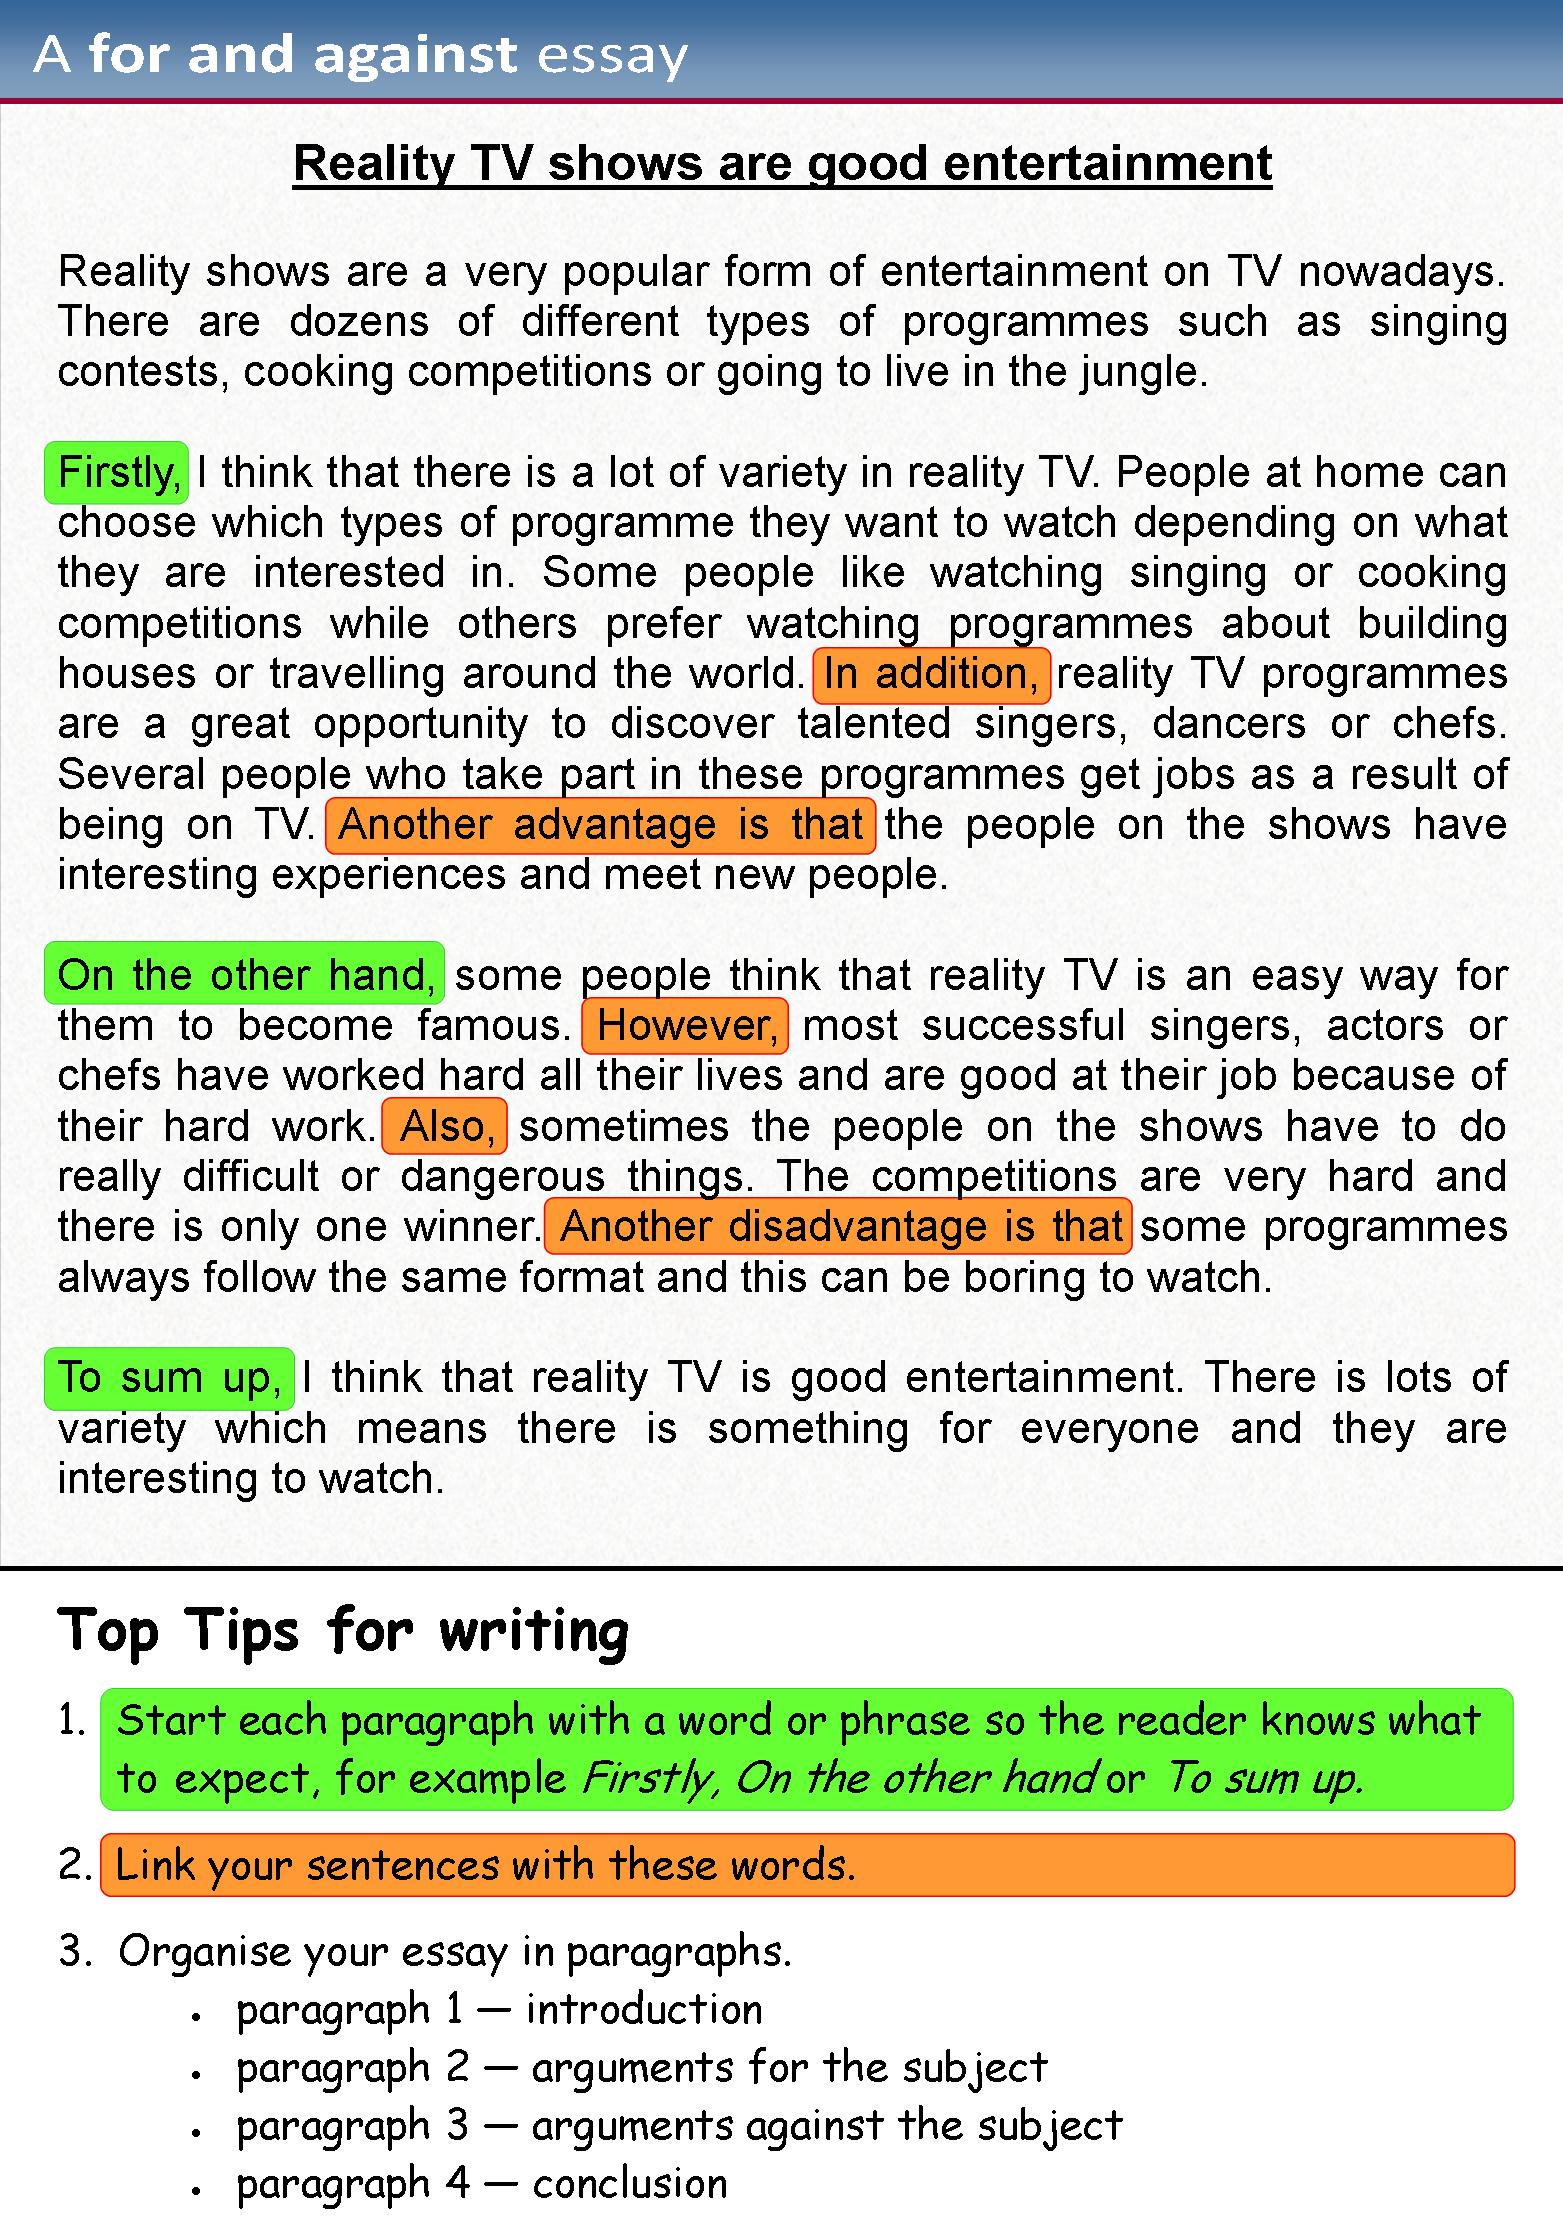 002 Another Word For Essay Example Fantastic Argumentative Question This Will Full